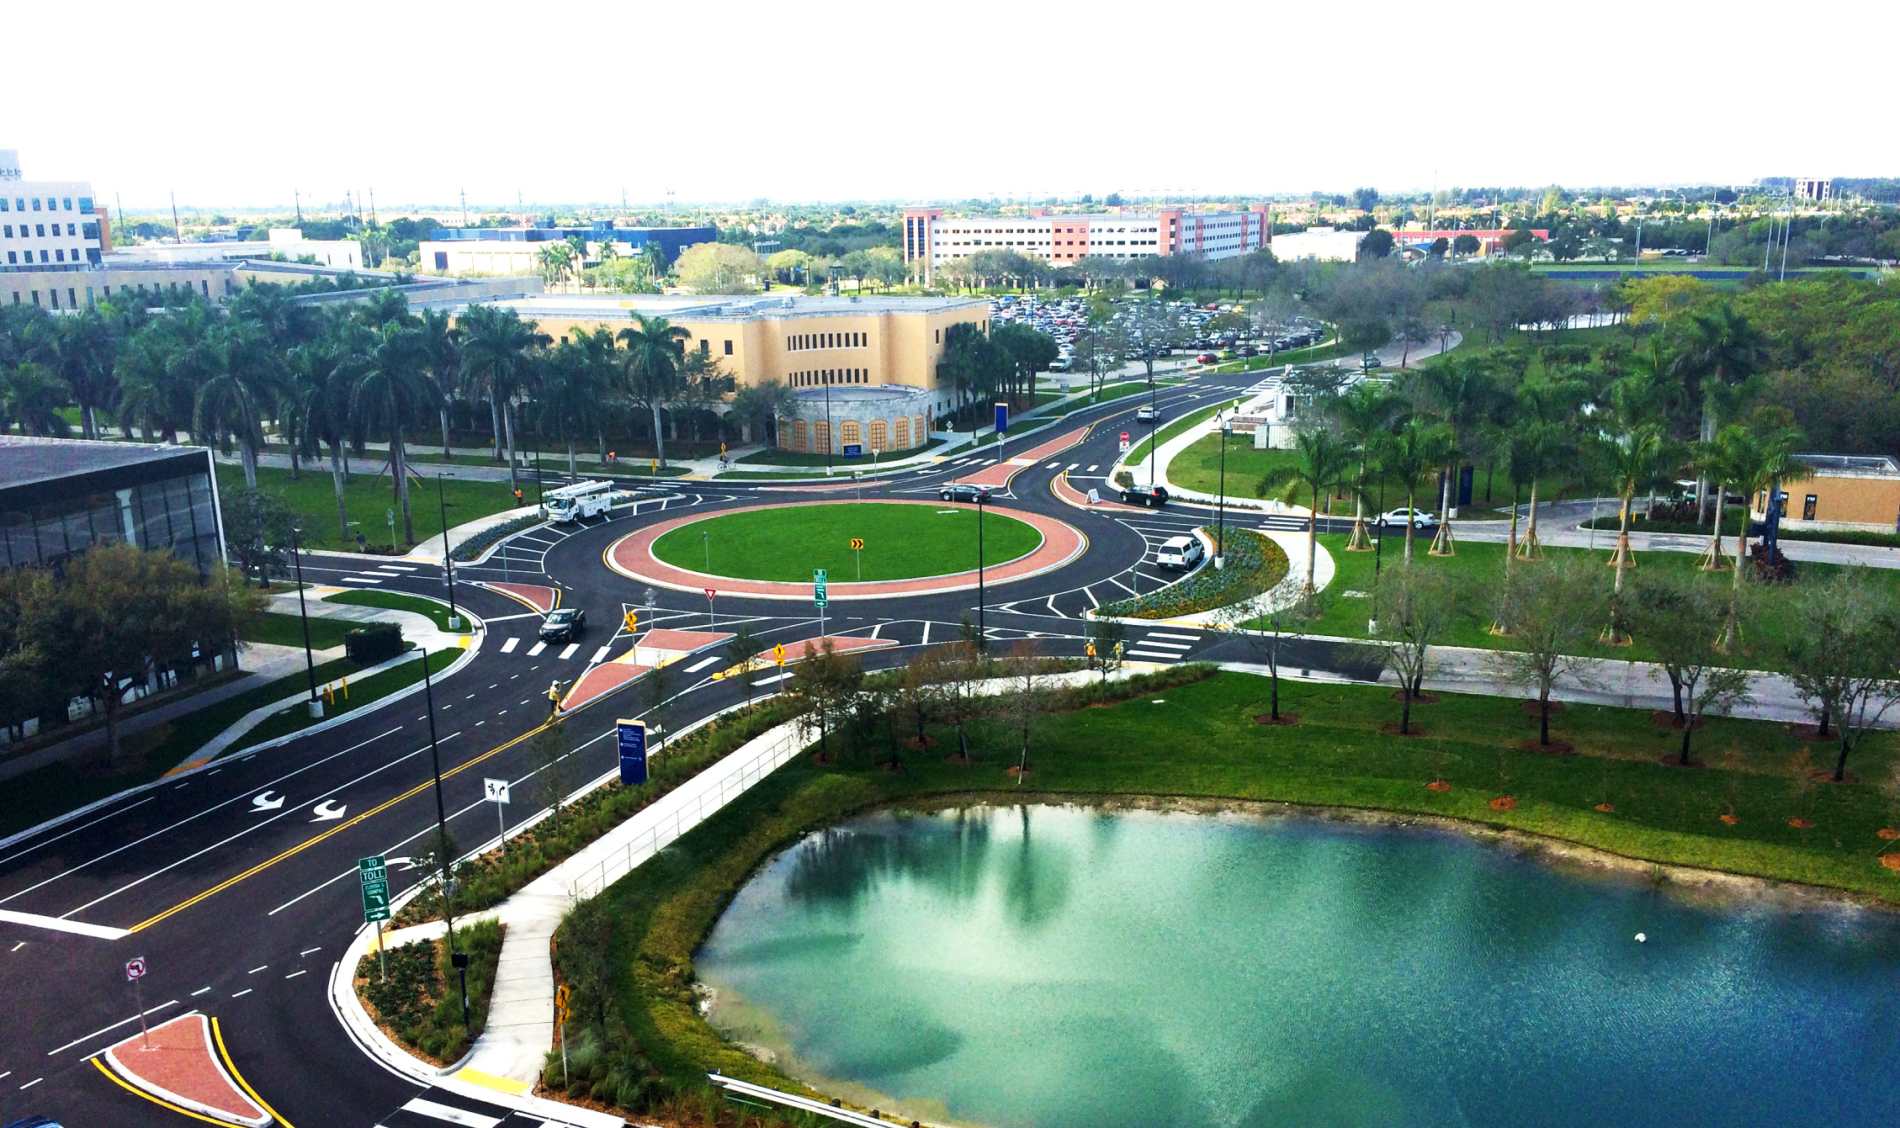 FIU Parking Garage & Roundabout